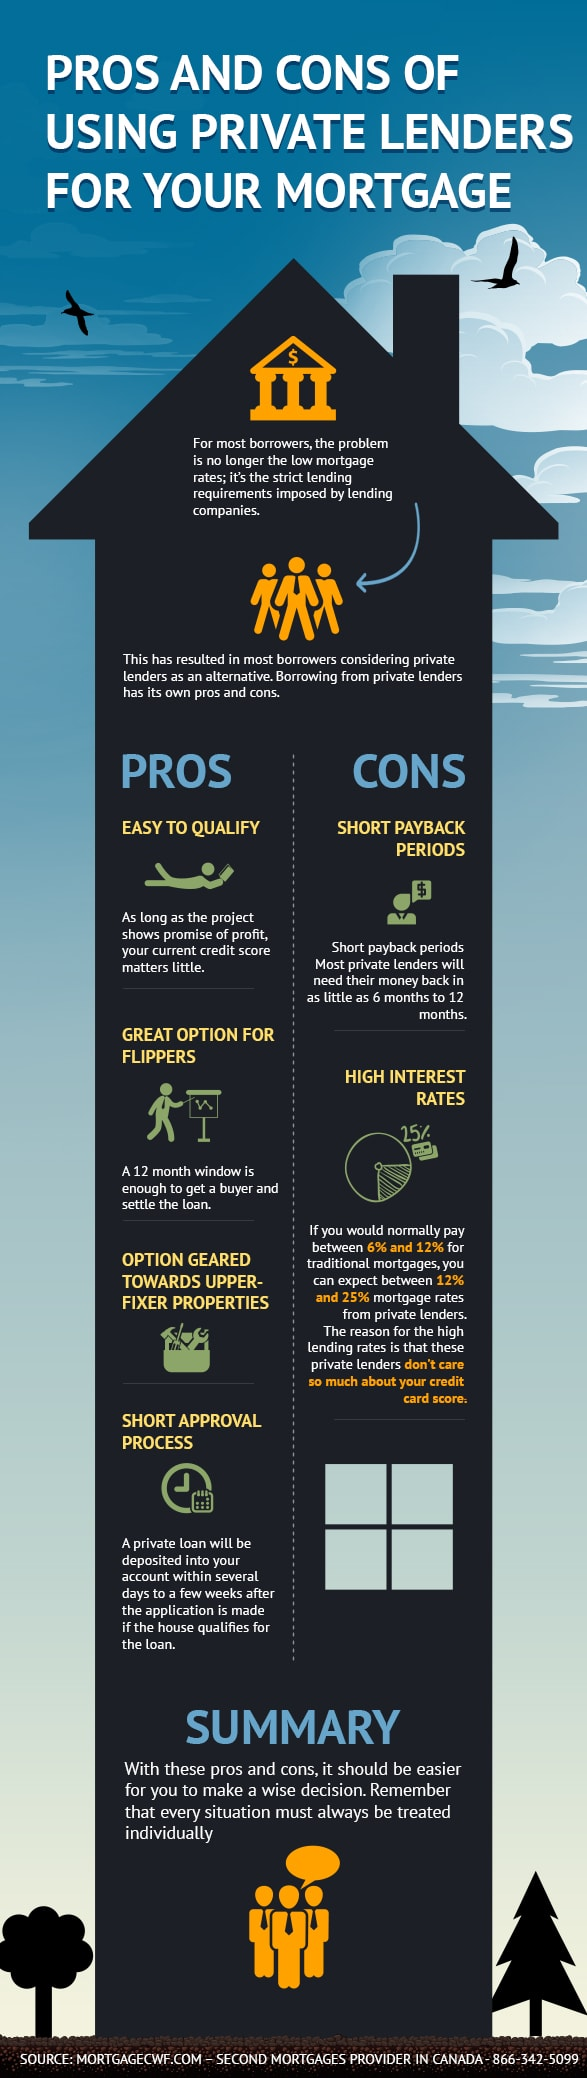 Pros and Cons of Using private Lenders for your Mortgage - Infographic